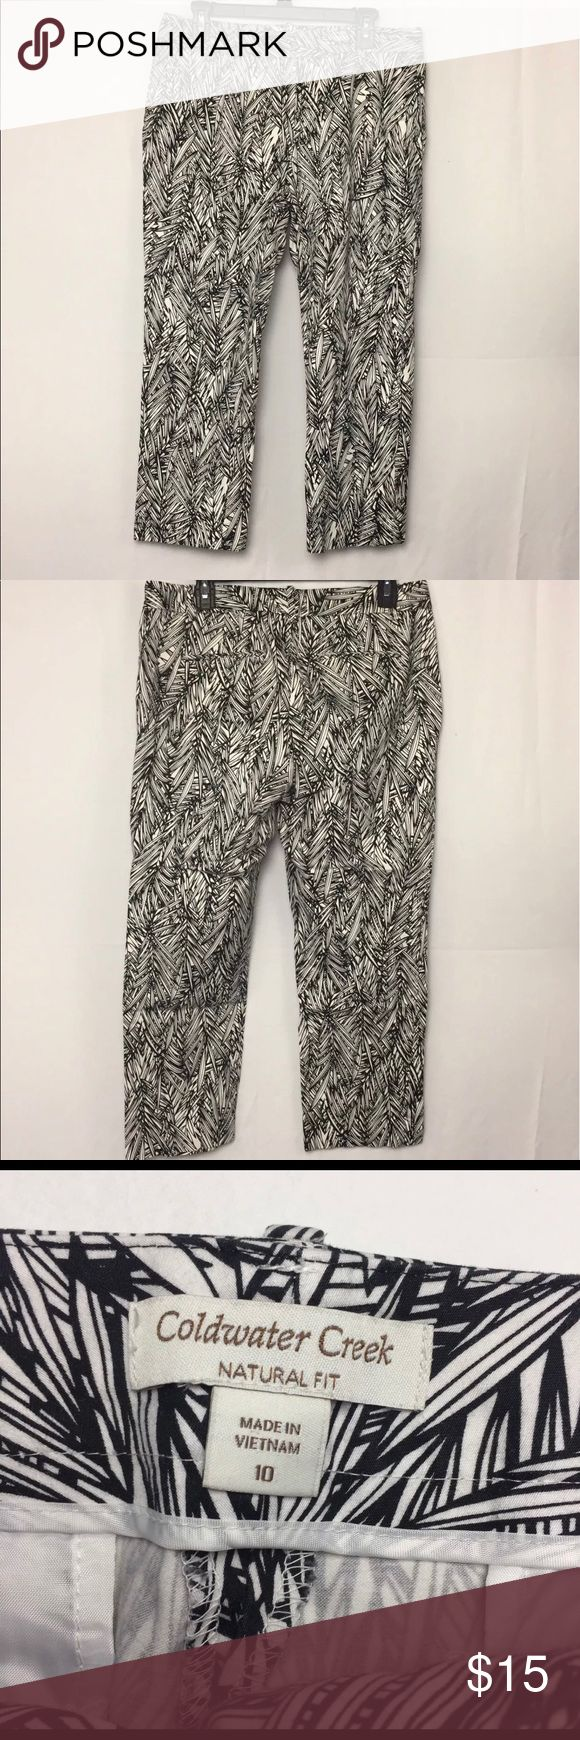 Coldwater Creek Natural Fit Capri Cropped Pants 10 Coldwater Creek Natural Fit Capri Cropped Pants 10 Women's Gingham Black White Coldwater Creek Pants Capris